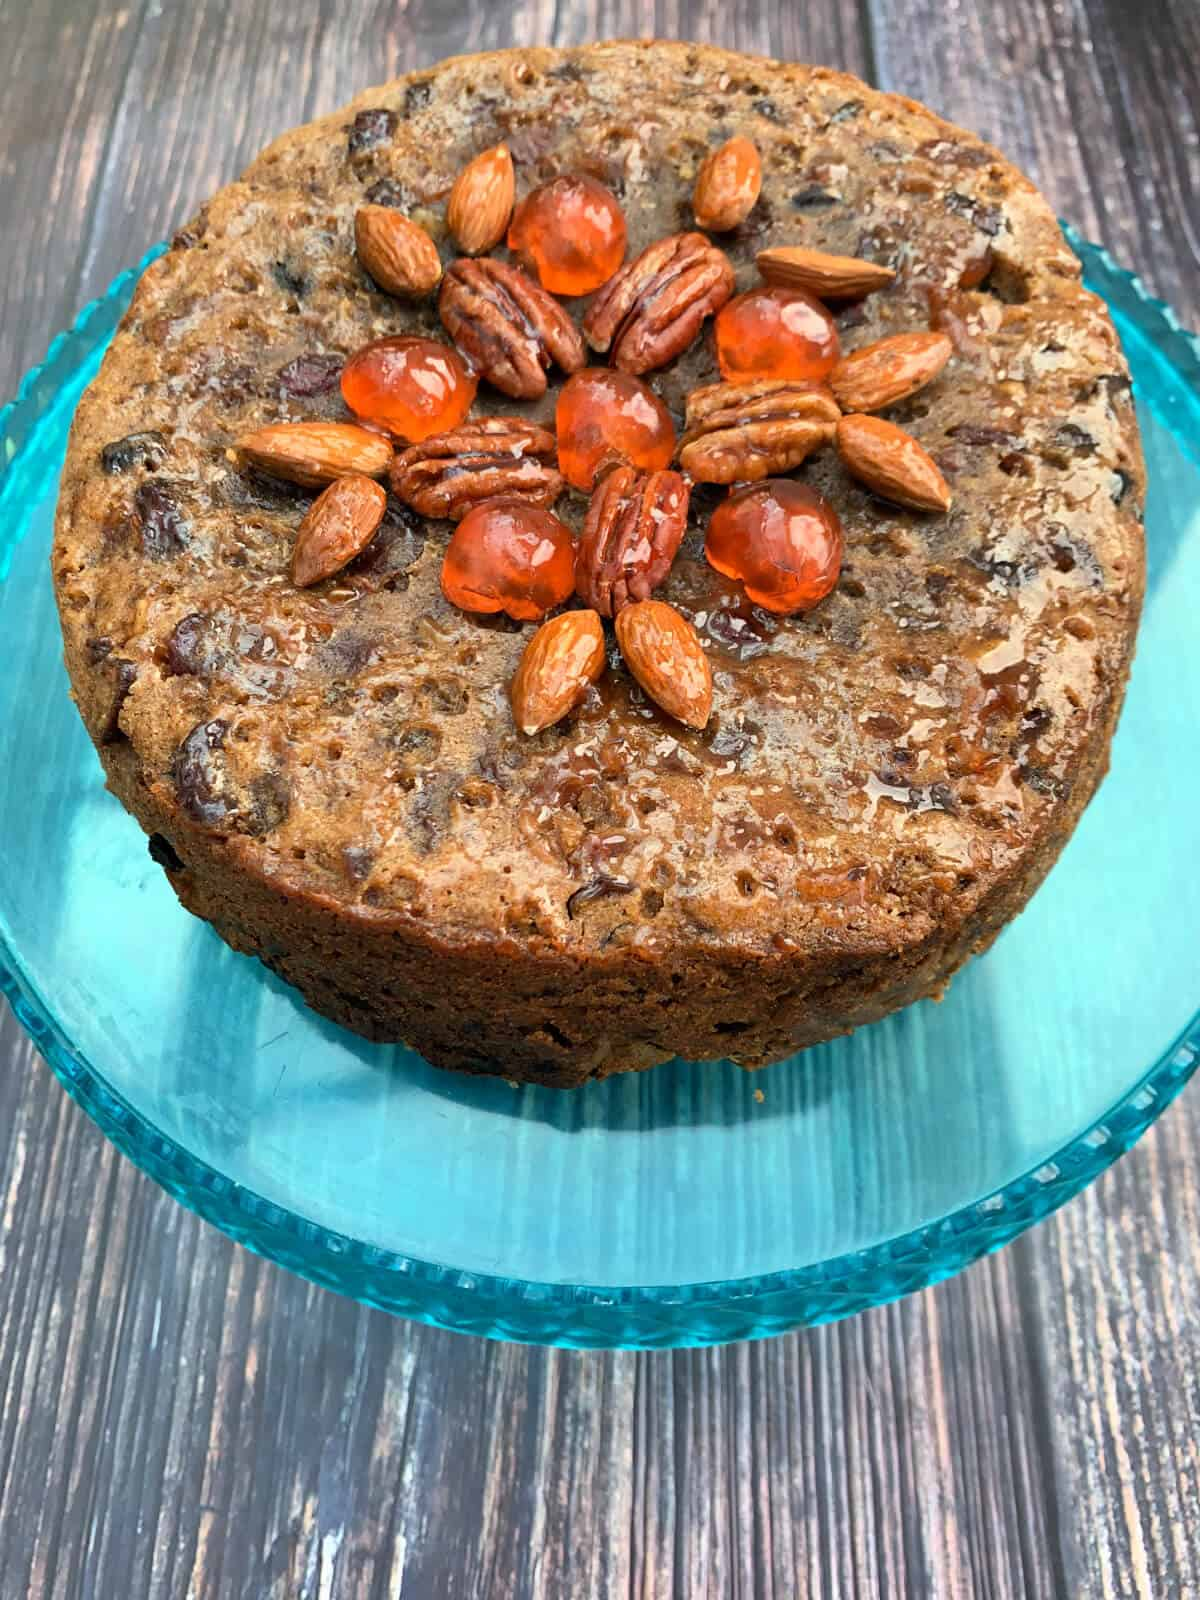 Christmas fruit cake decorated with fruit and nuts on a blue cake stand.